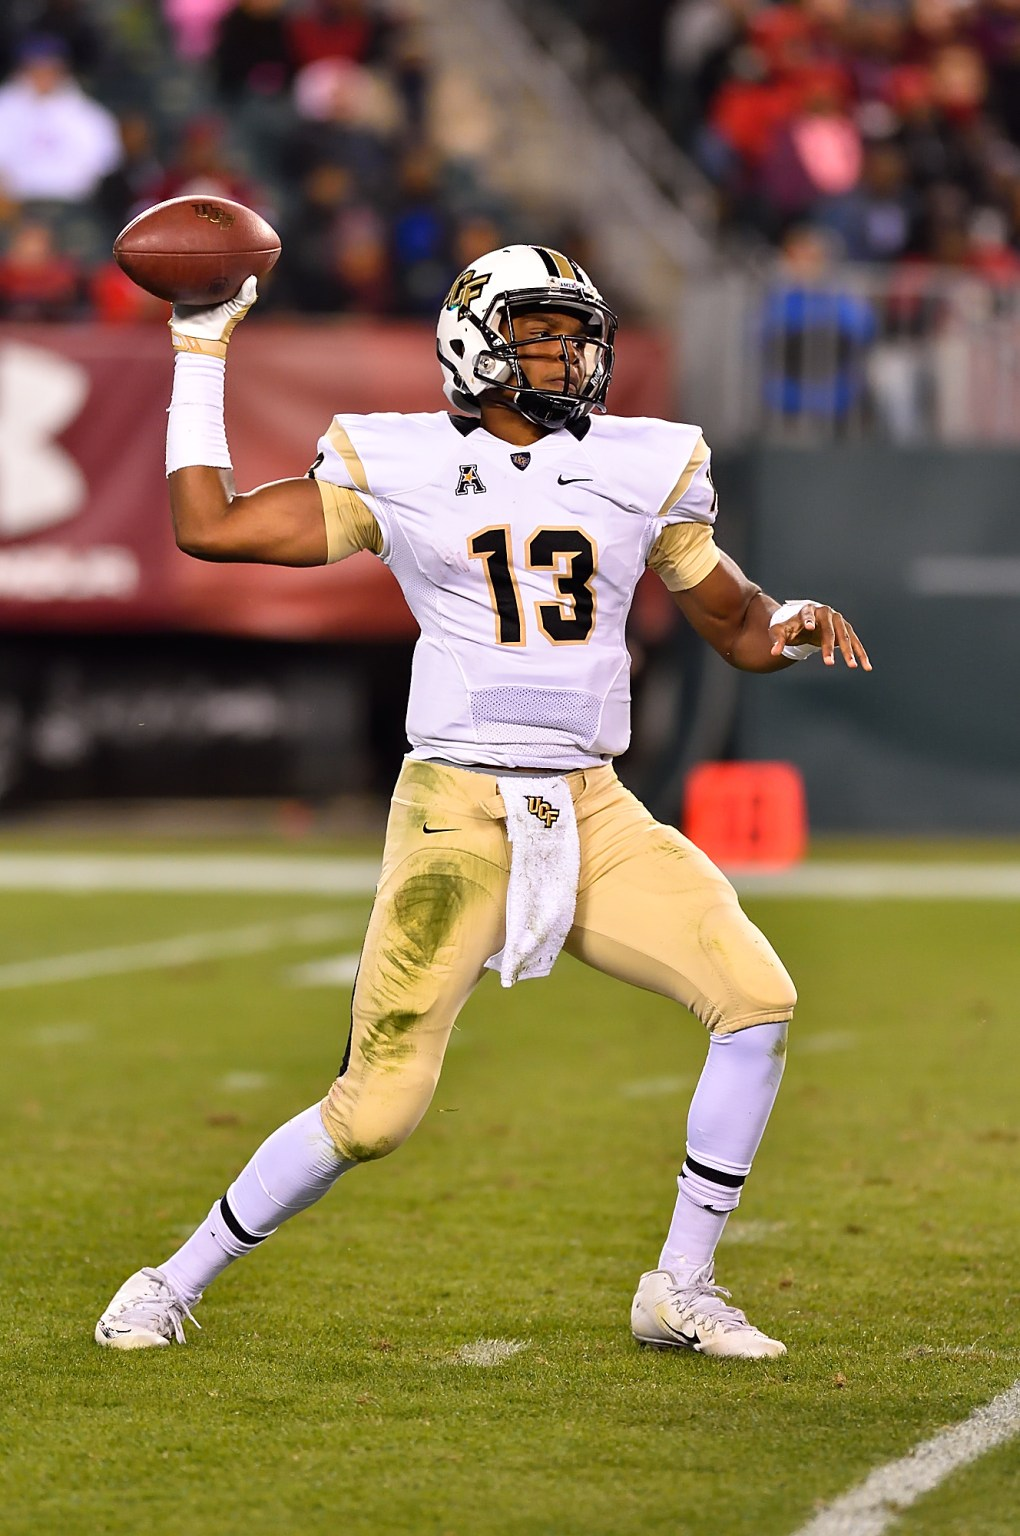 Senior quarterback Justin Holman will be starting in the home and season opener on Sep. 3. Courtesy UCF Athletics Communications